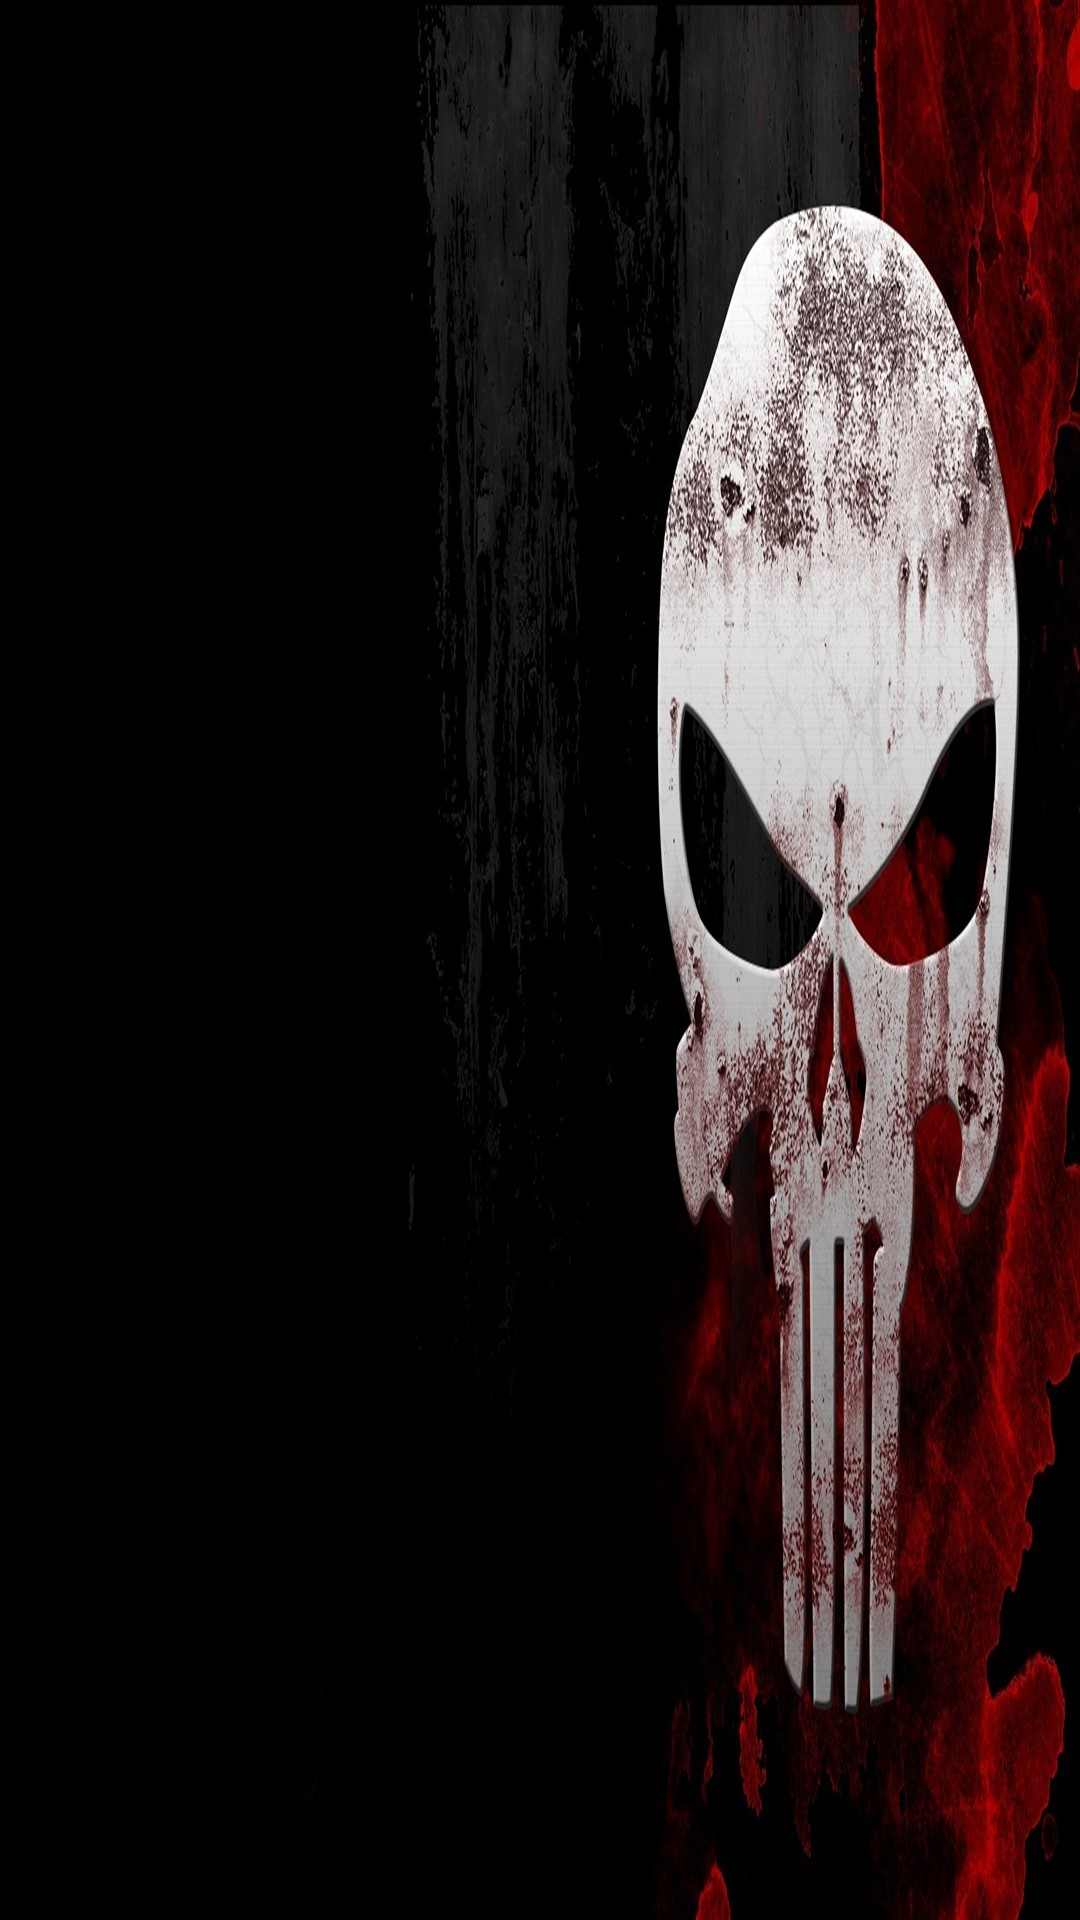 Res: 1080x1920, the punisher skull wallpaper hd - Download Hd the punisher skull hd  wallpaper for desktop and mobile device. Best wide the punisher skull  hdfree background ...